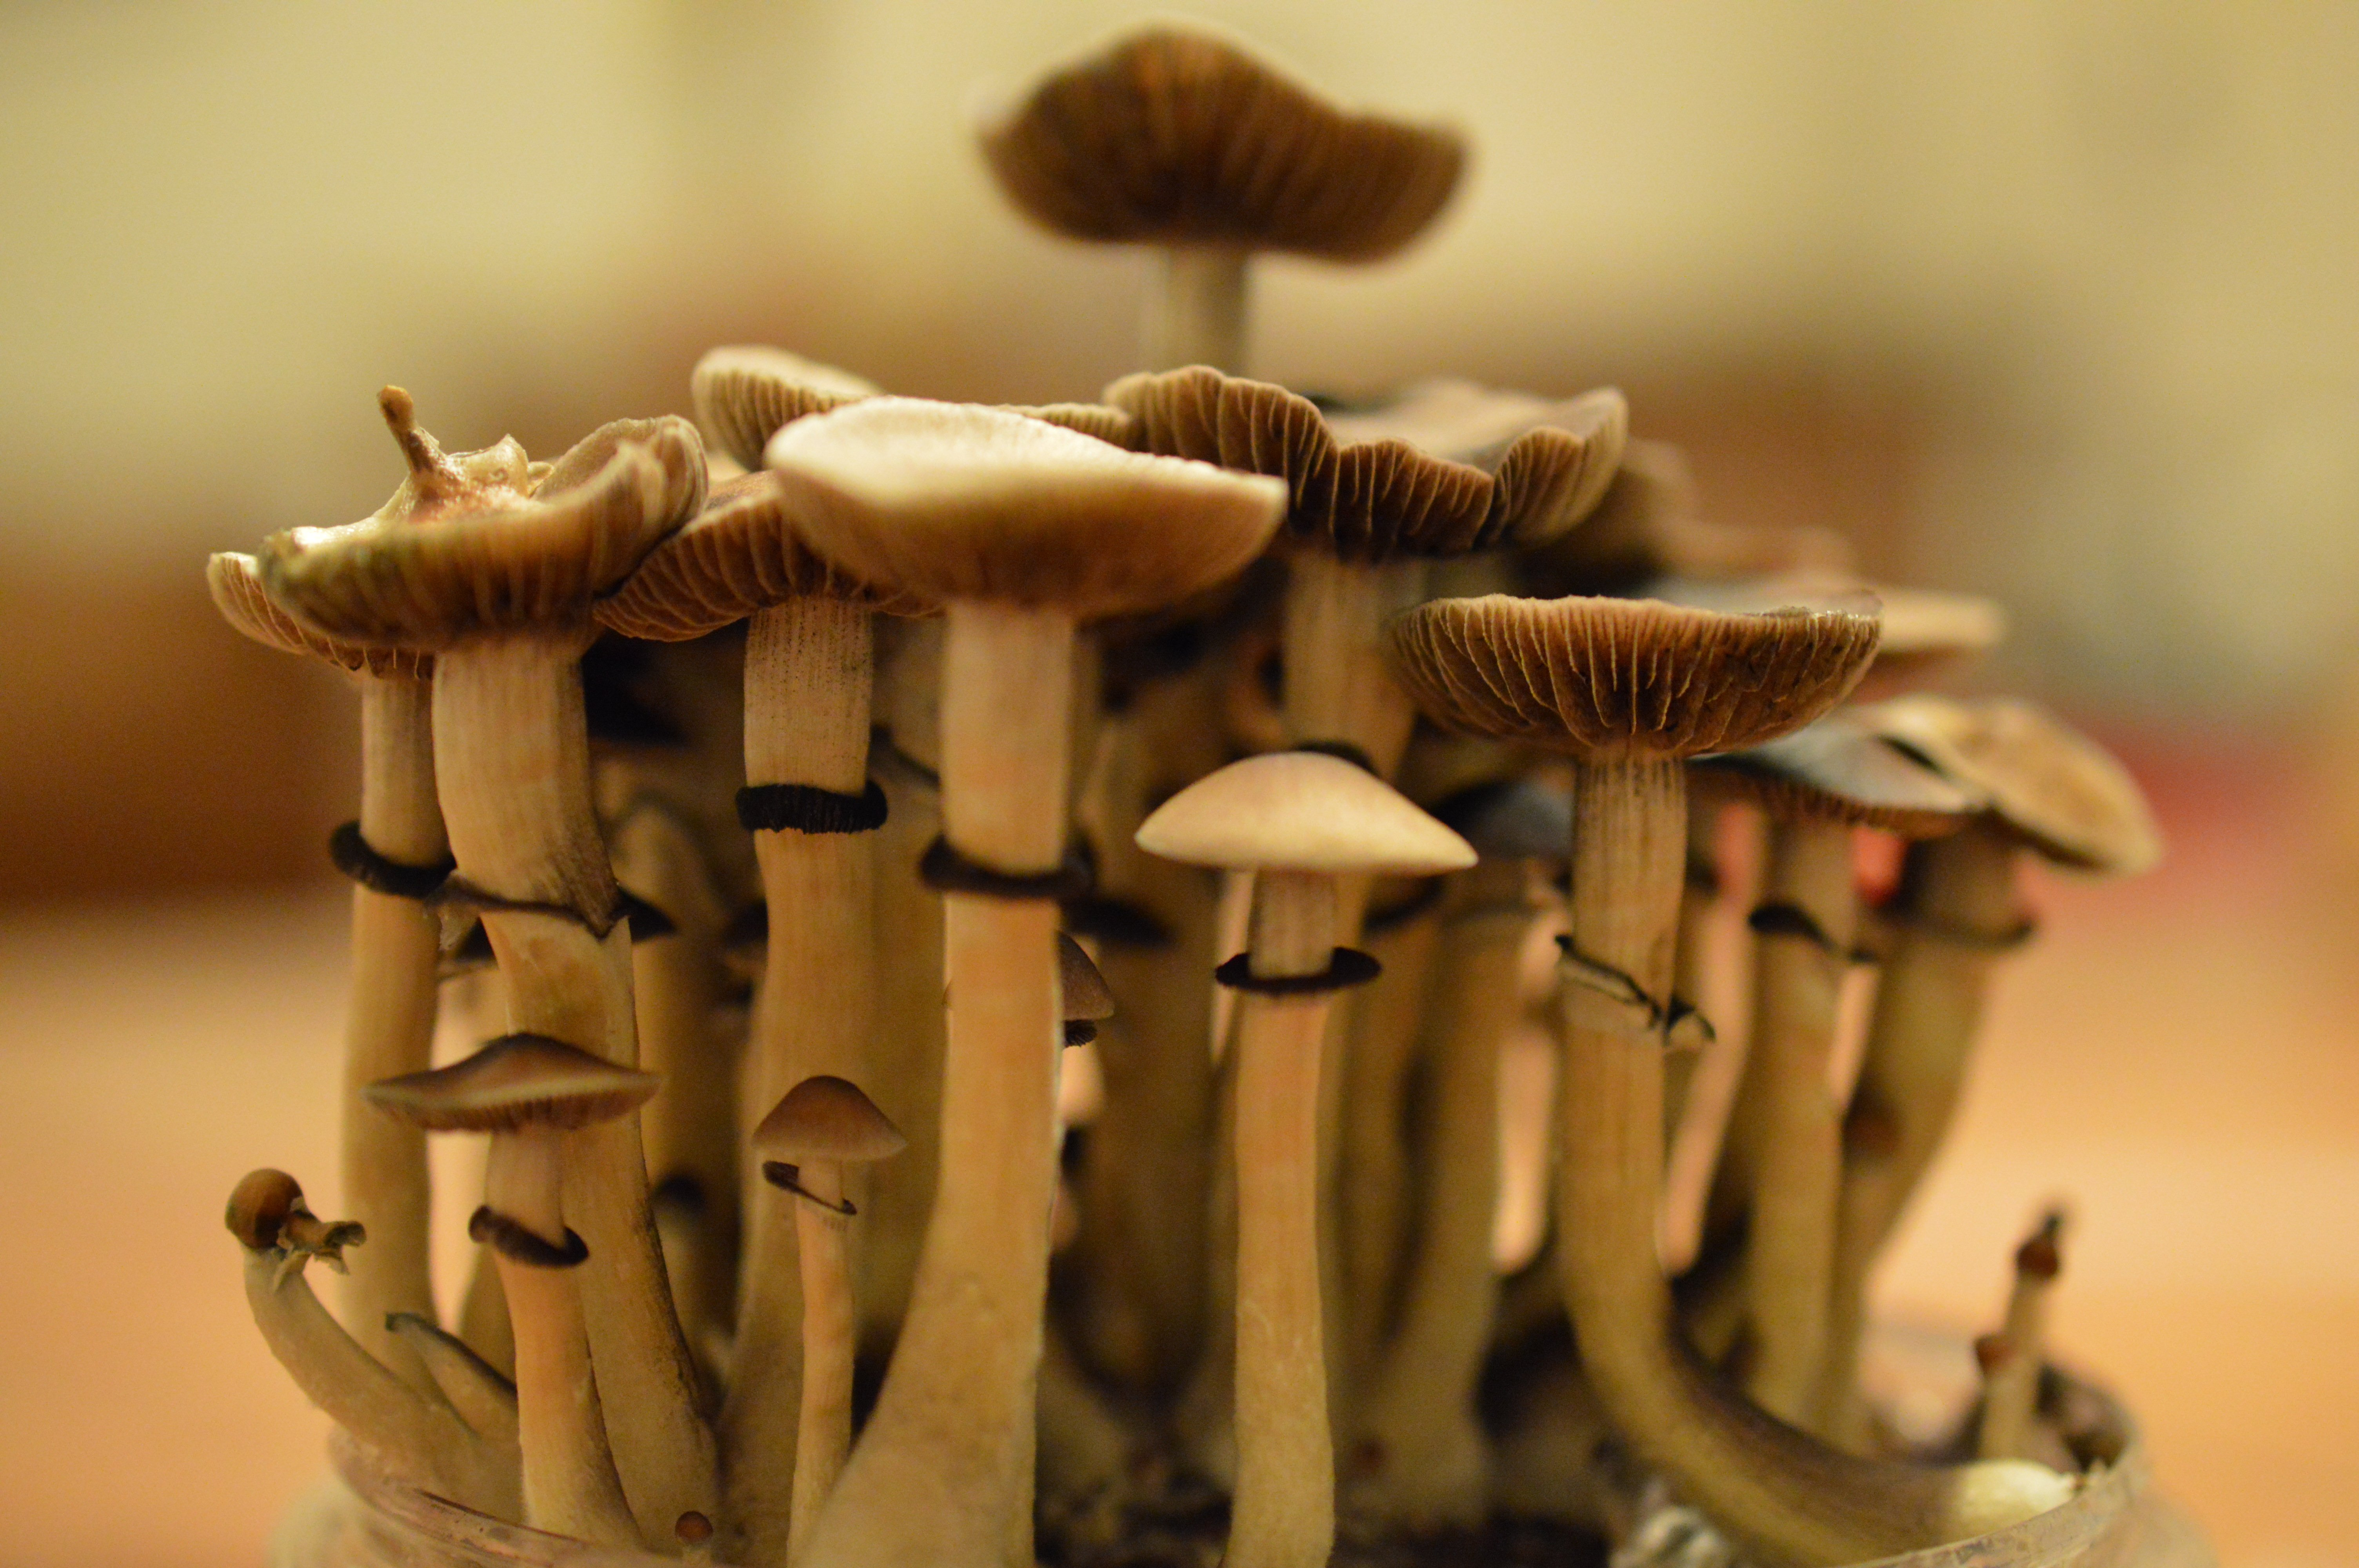 Mushroom Dosage: From Microdosing to Heroic Doses